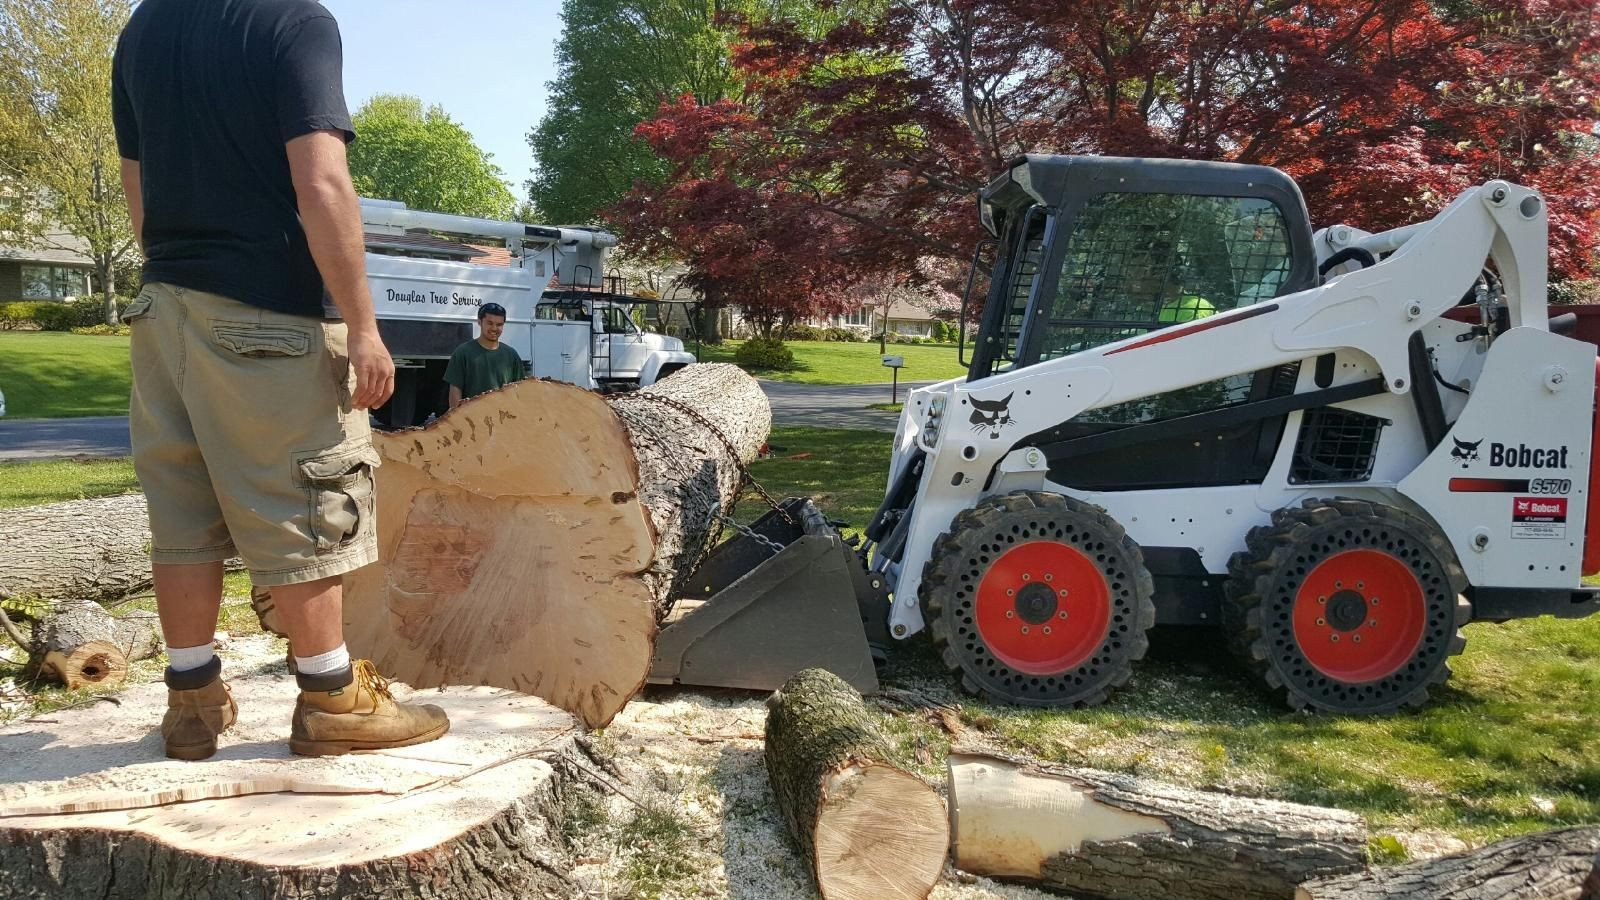 Enterprise-Henderson's Complete Tree Services-We Offer Tree Trimming Services, Tree Removal, Tree Pruning, Tree Cutting, Residential and Commercial Tree Trimming Services, Storm Damage, Emergency Tree Removal, Land Clearing, Tree Companies, Tree Care Service, Stump Grinding, and we're the Best Tree Trimming Company Near You Guaranteed!